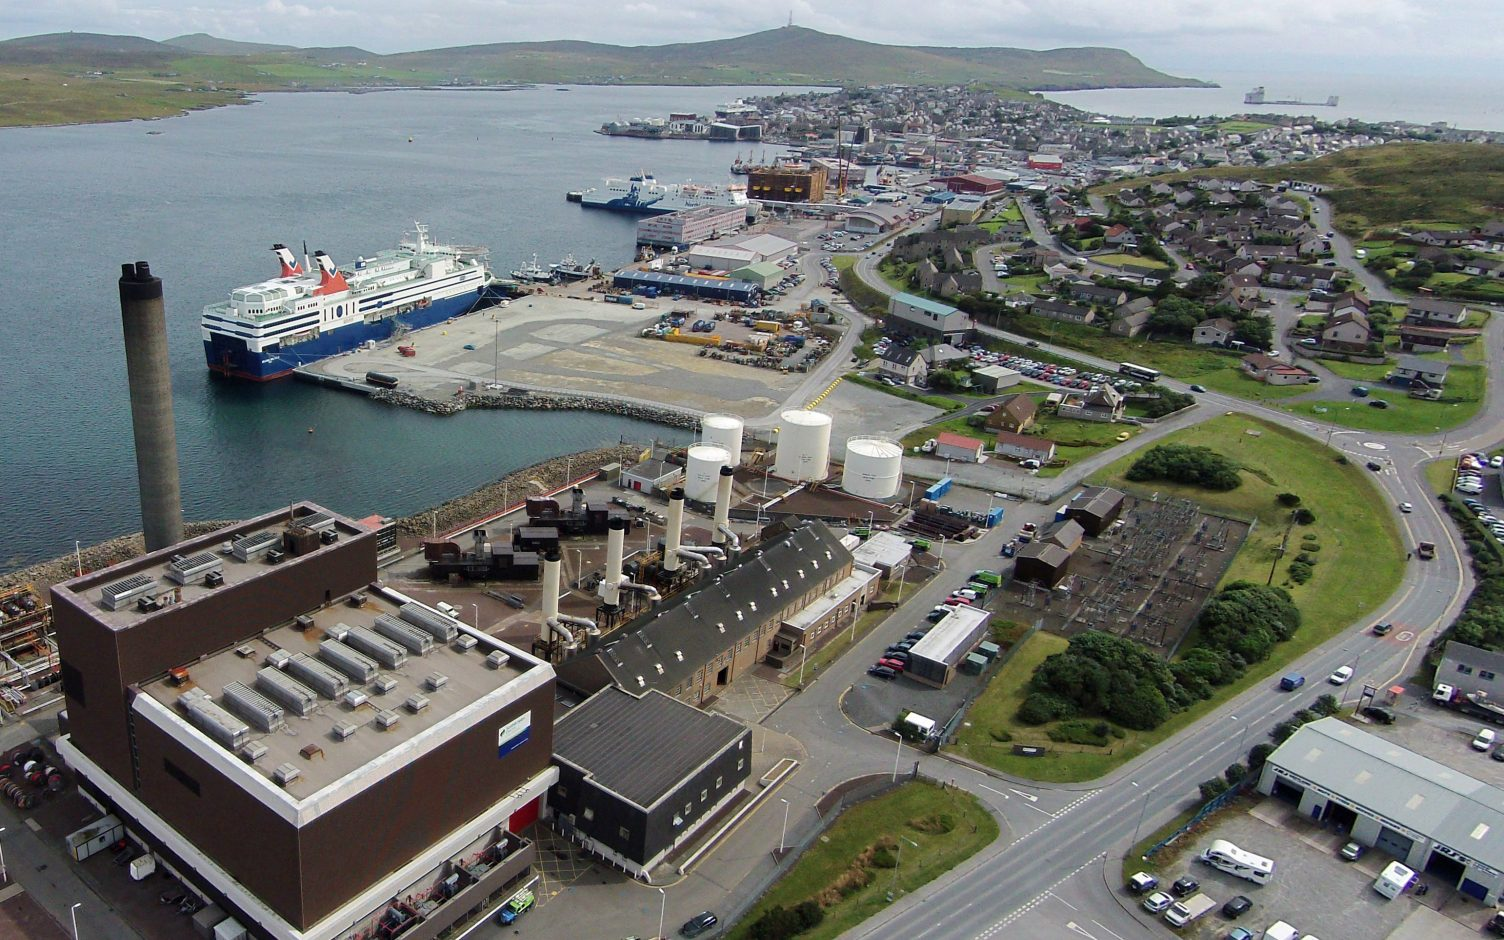 A 6MWh Wärtsilä energy storage system is being installed at the Lerwick power station. Image: SSEN.